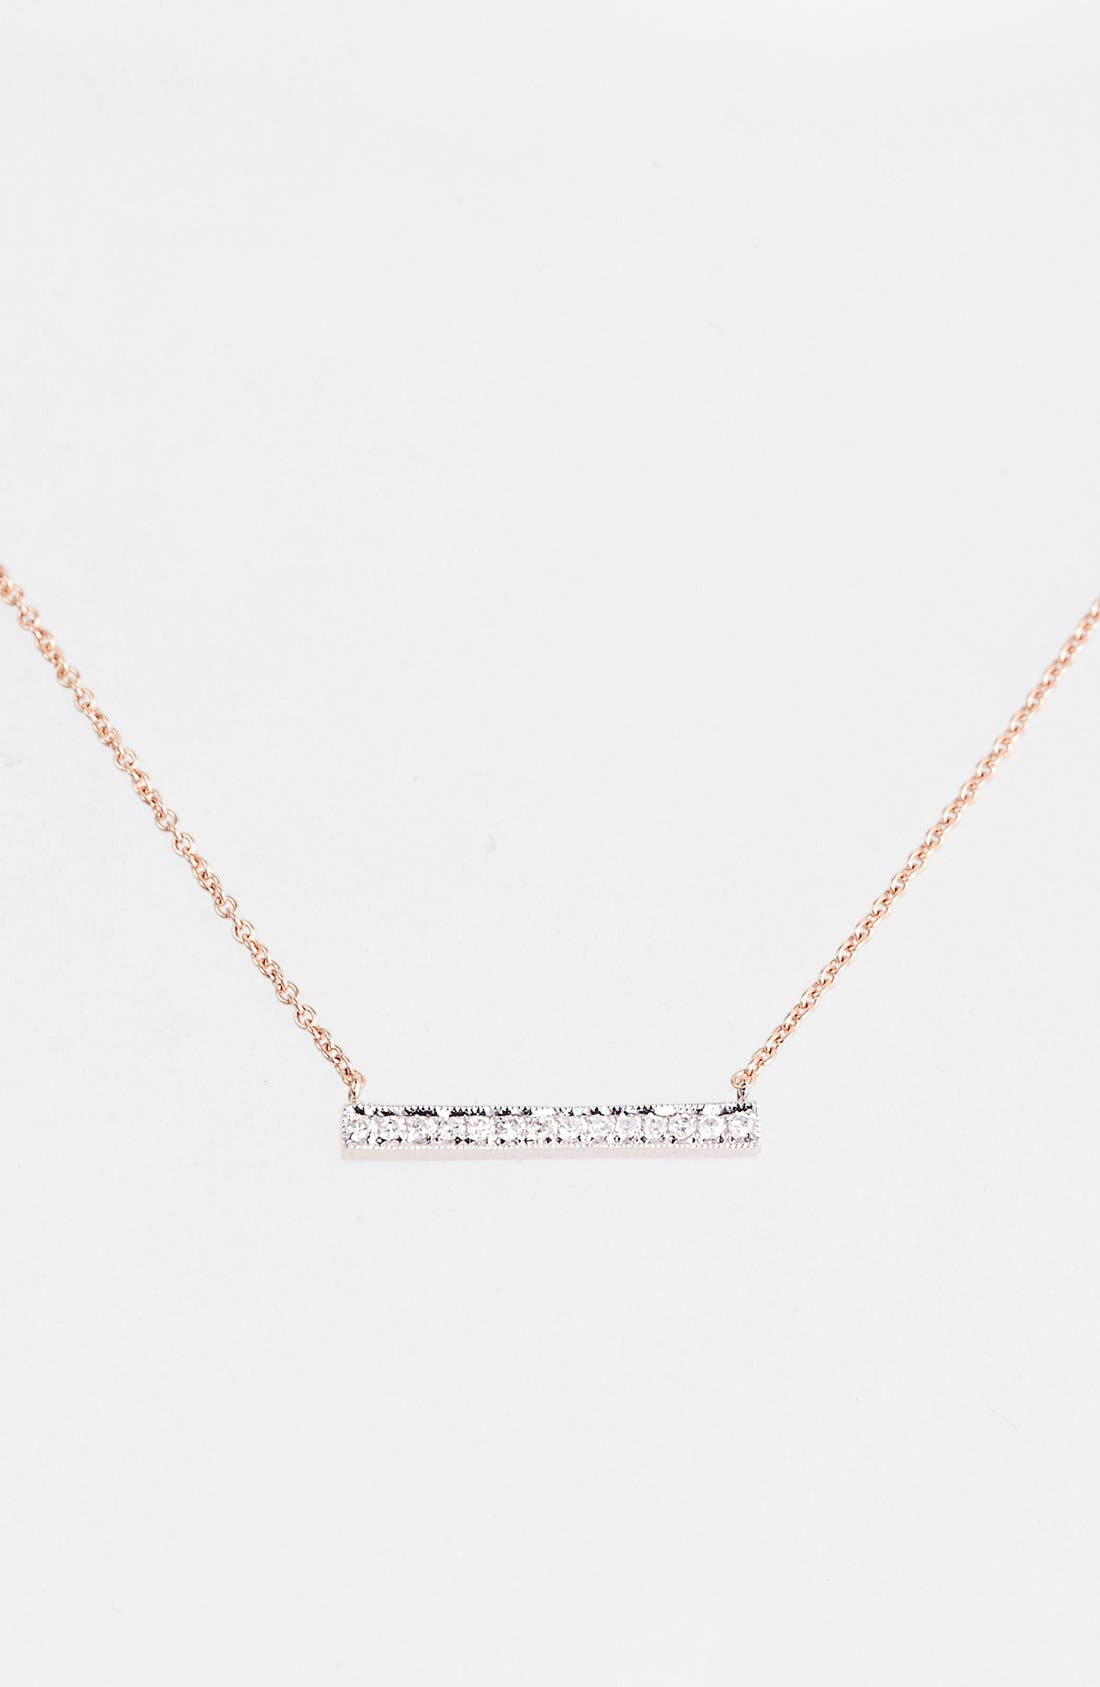 DANA REBECCA DESIGNS 'Sylvie Rose' Medium Diamond Bar